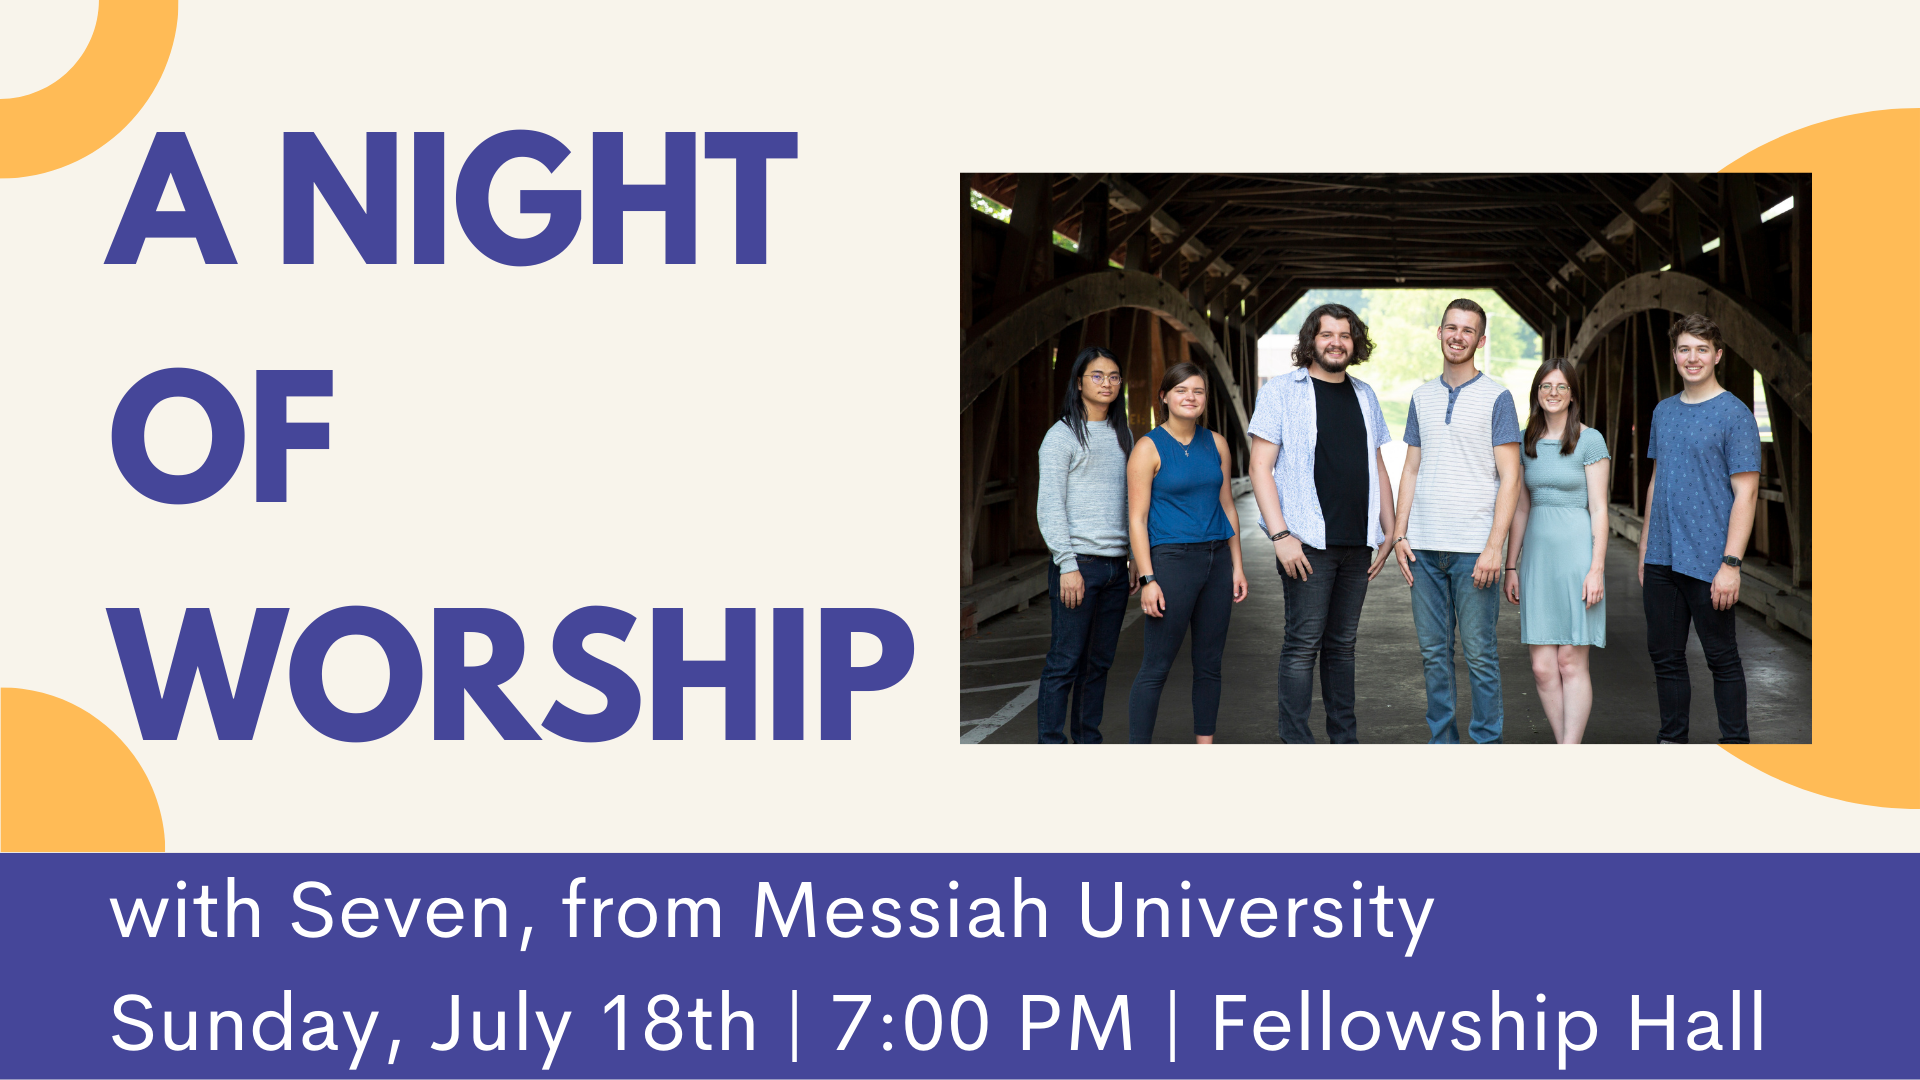 A Night of Worship with Seven from Messiah University - July 18th